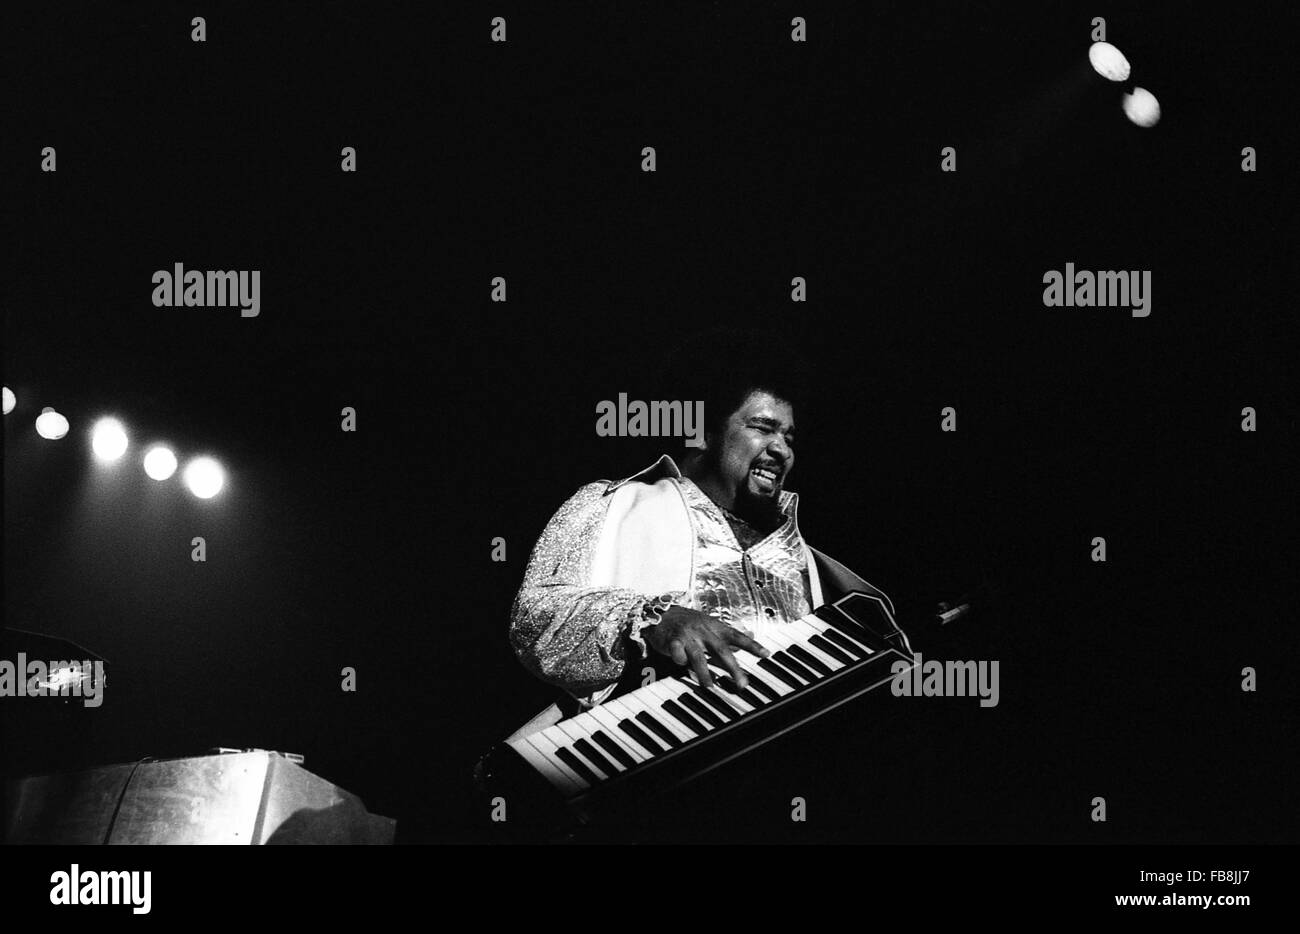 George Duke in concert in 1979 -  1979  -    -  George Duke in concert in 1979. He died on August 5th 2013   -  - Stock Image